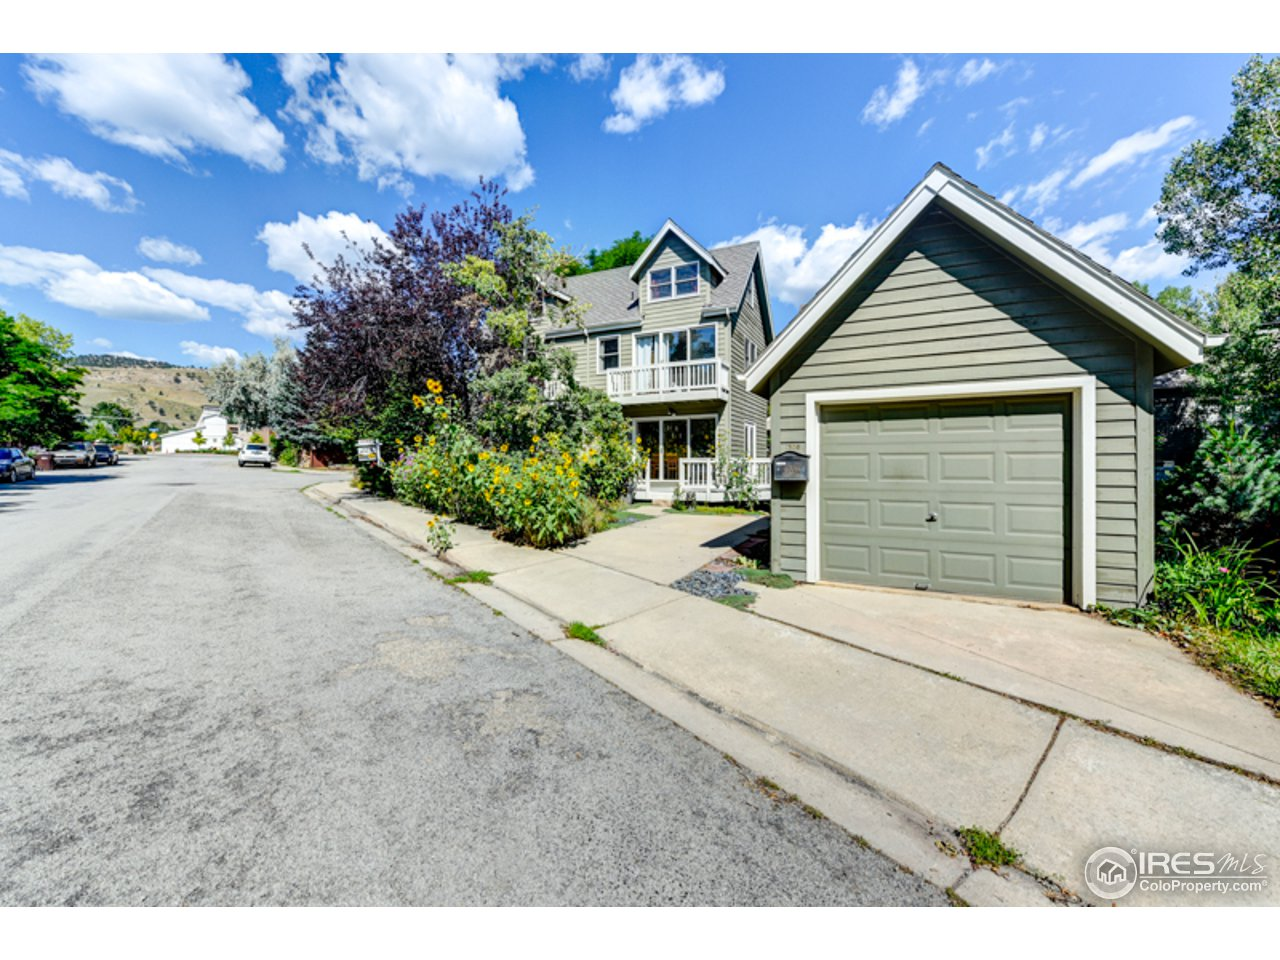 1305 Redwood Ave, Boulder CO 80304